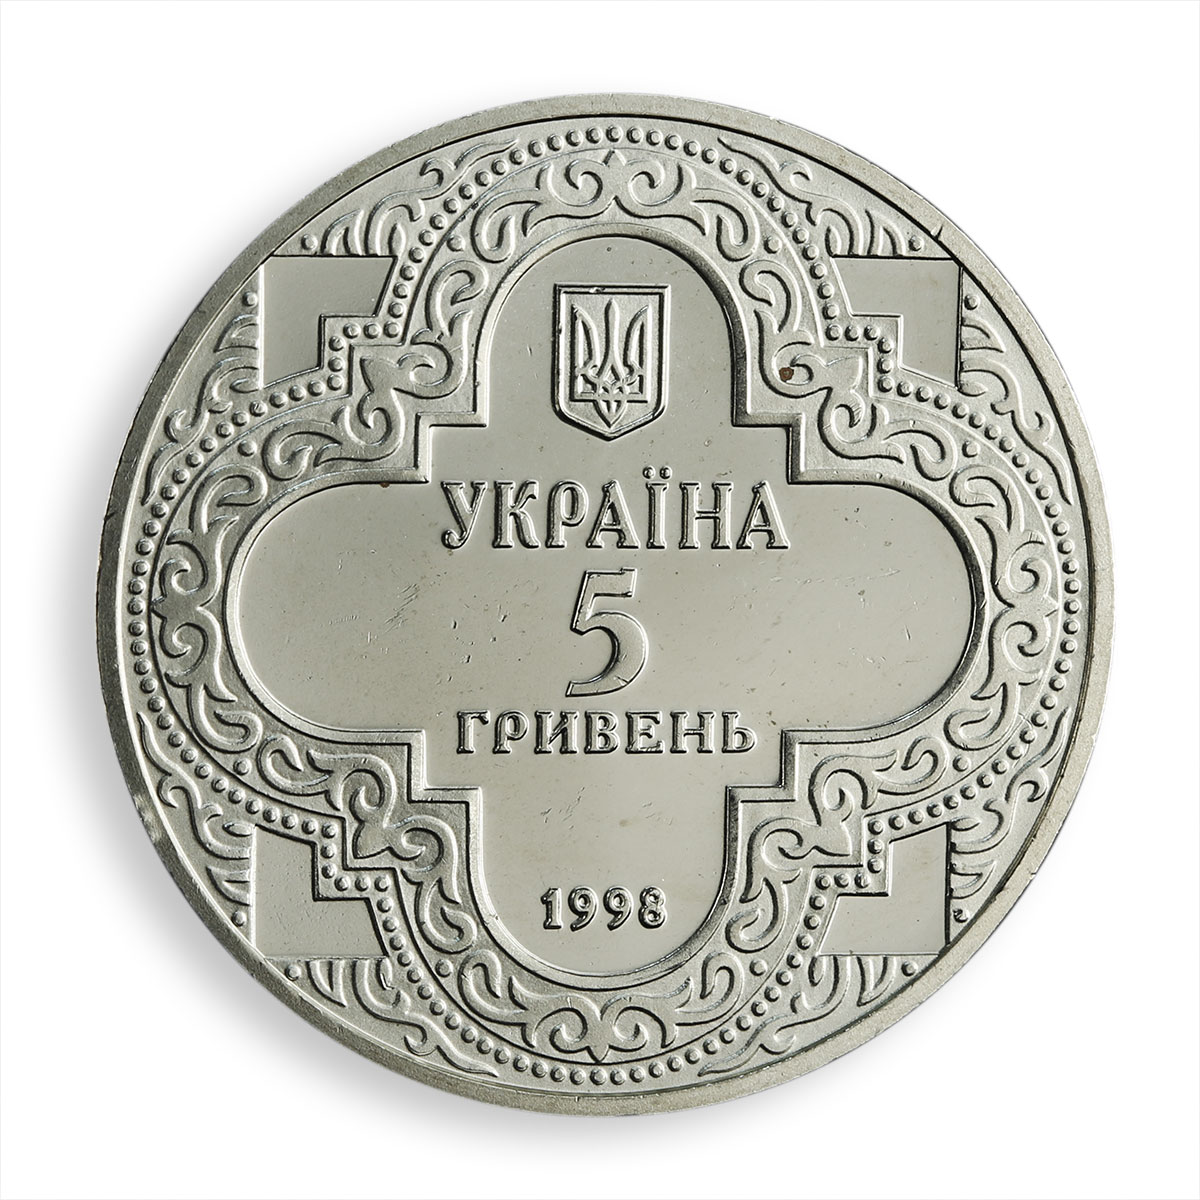 Ukraine 5 hryvnia St. Michael's Golden-domed Cathedral orthodox nickel coin 1998